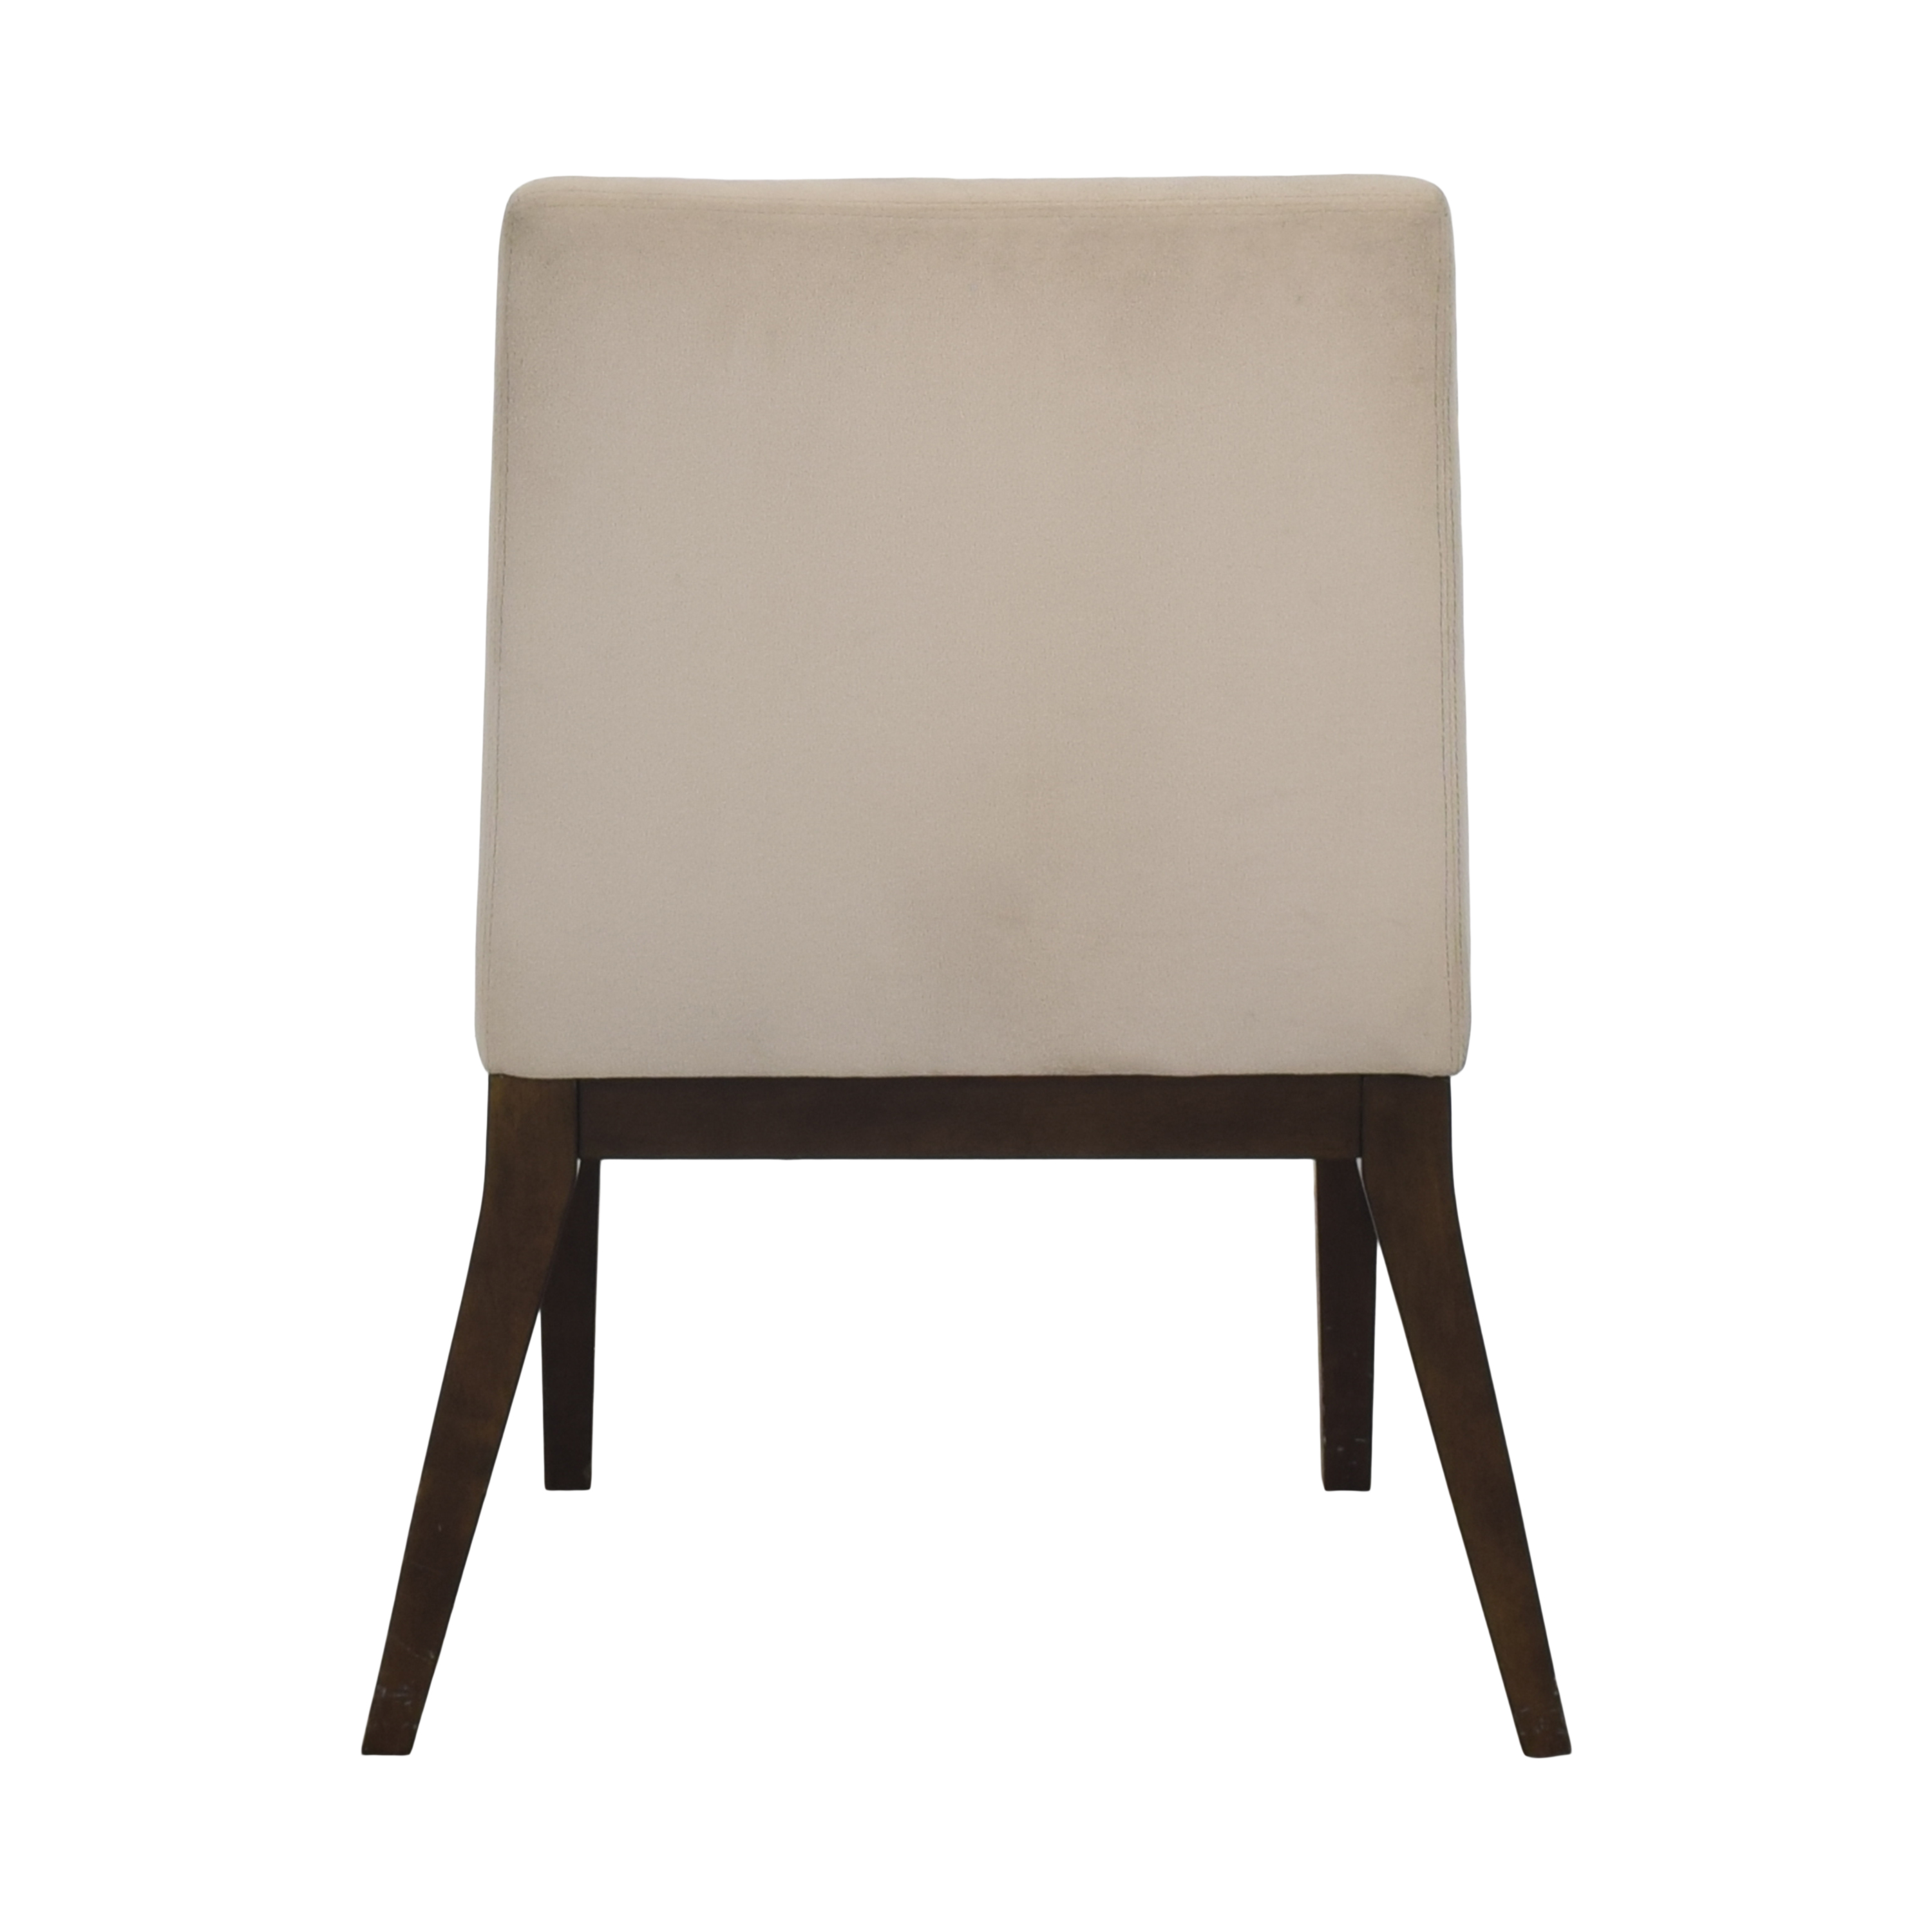 West Elm West Elm Curved Upholstered Dining Chair